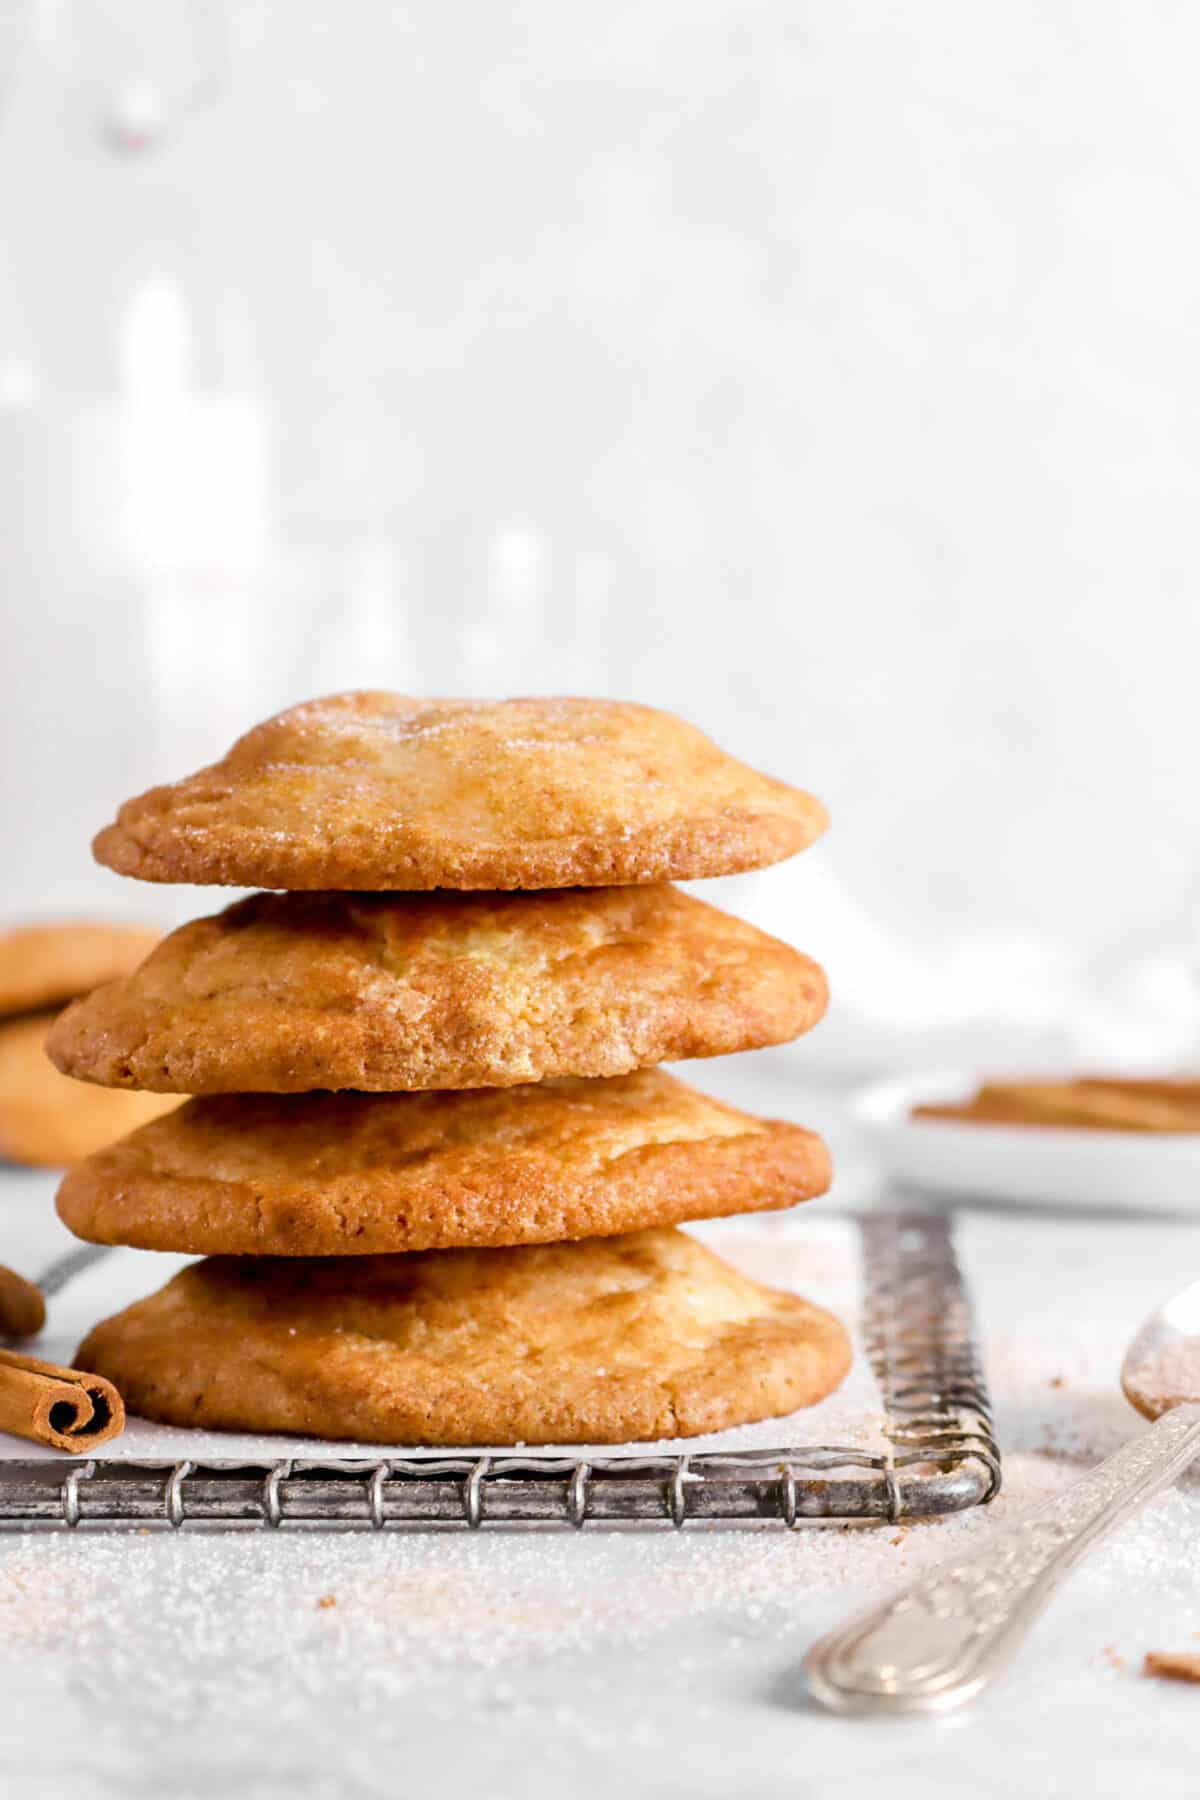 four stacked snickerdoodle cookies on wire cooling rack with spoon and glass of milk behind